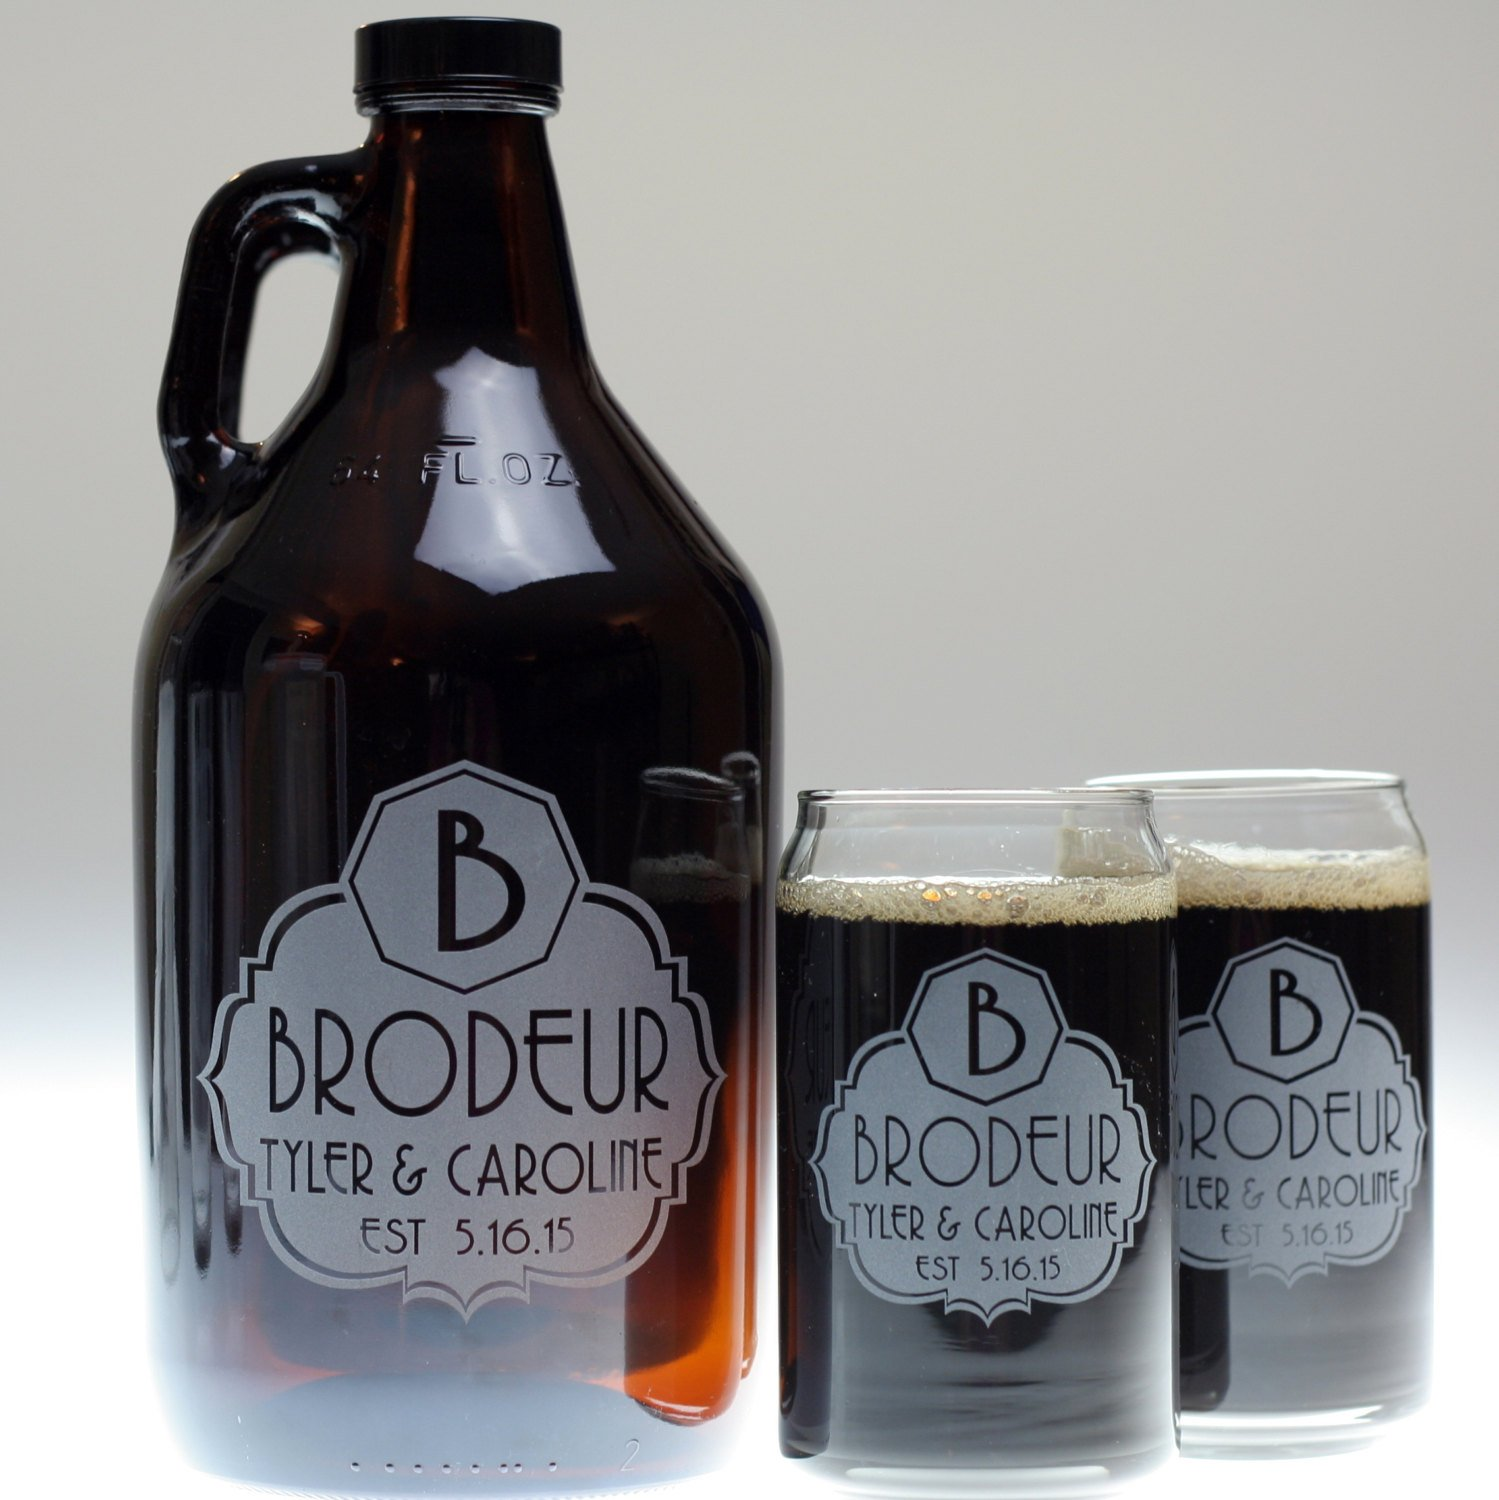 Personalized Engraved Wedding Gift of Beer Growler and Pint Glass Set Etched with Fancy Large Initial Label